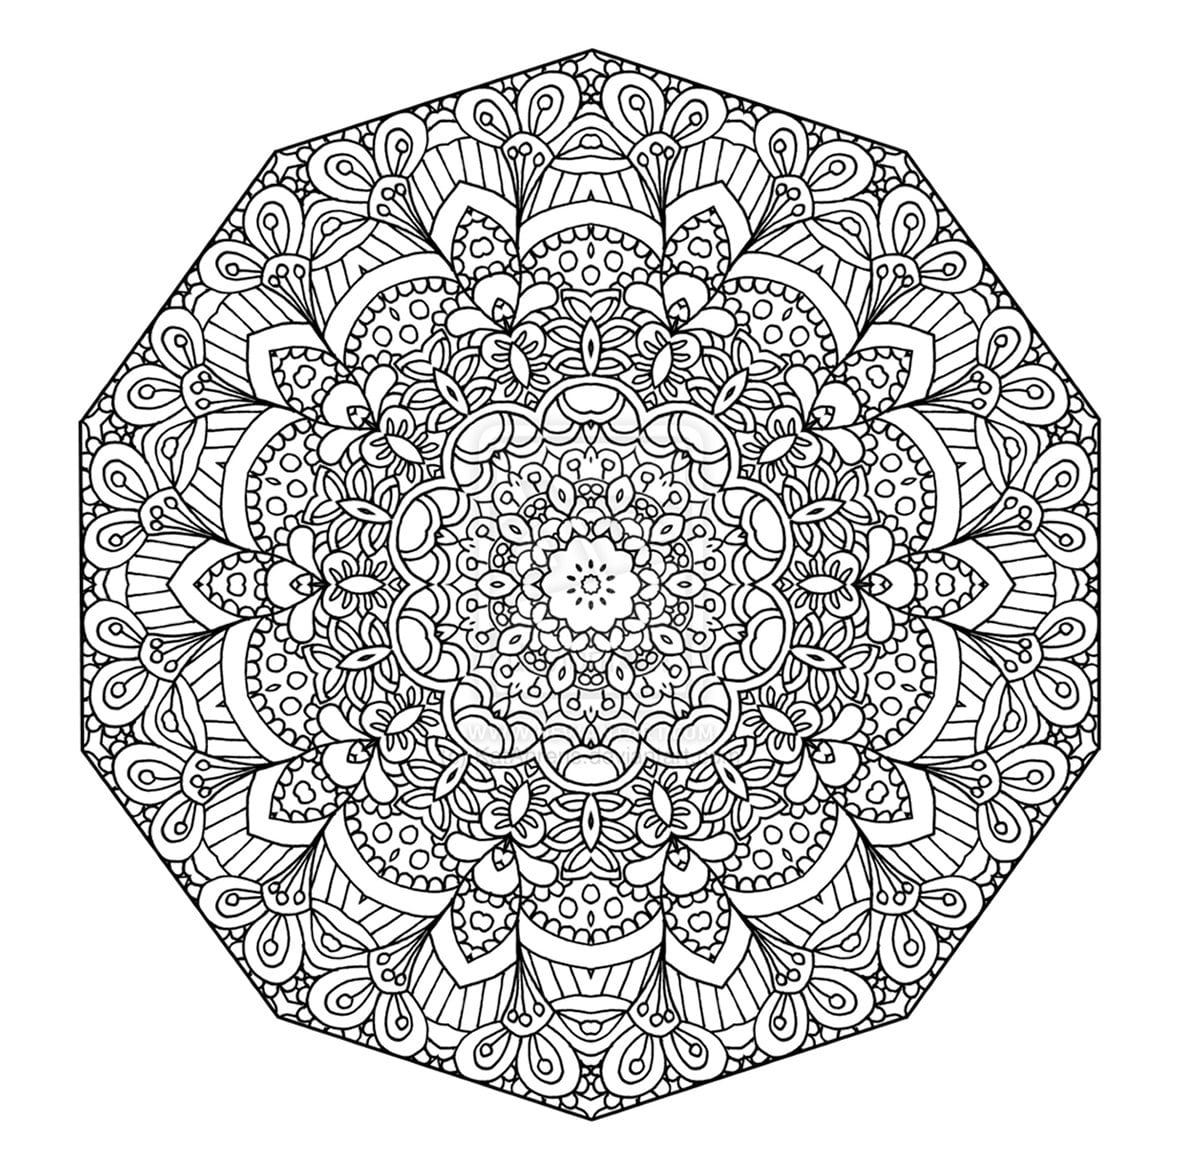 Mandala Coloring Page Pages Advanced Level Dringrames Org